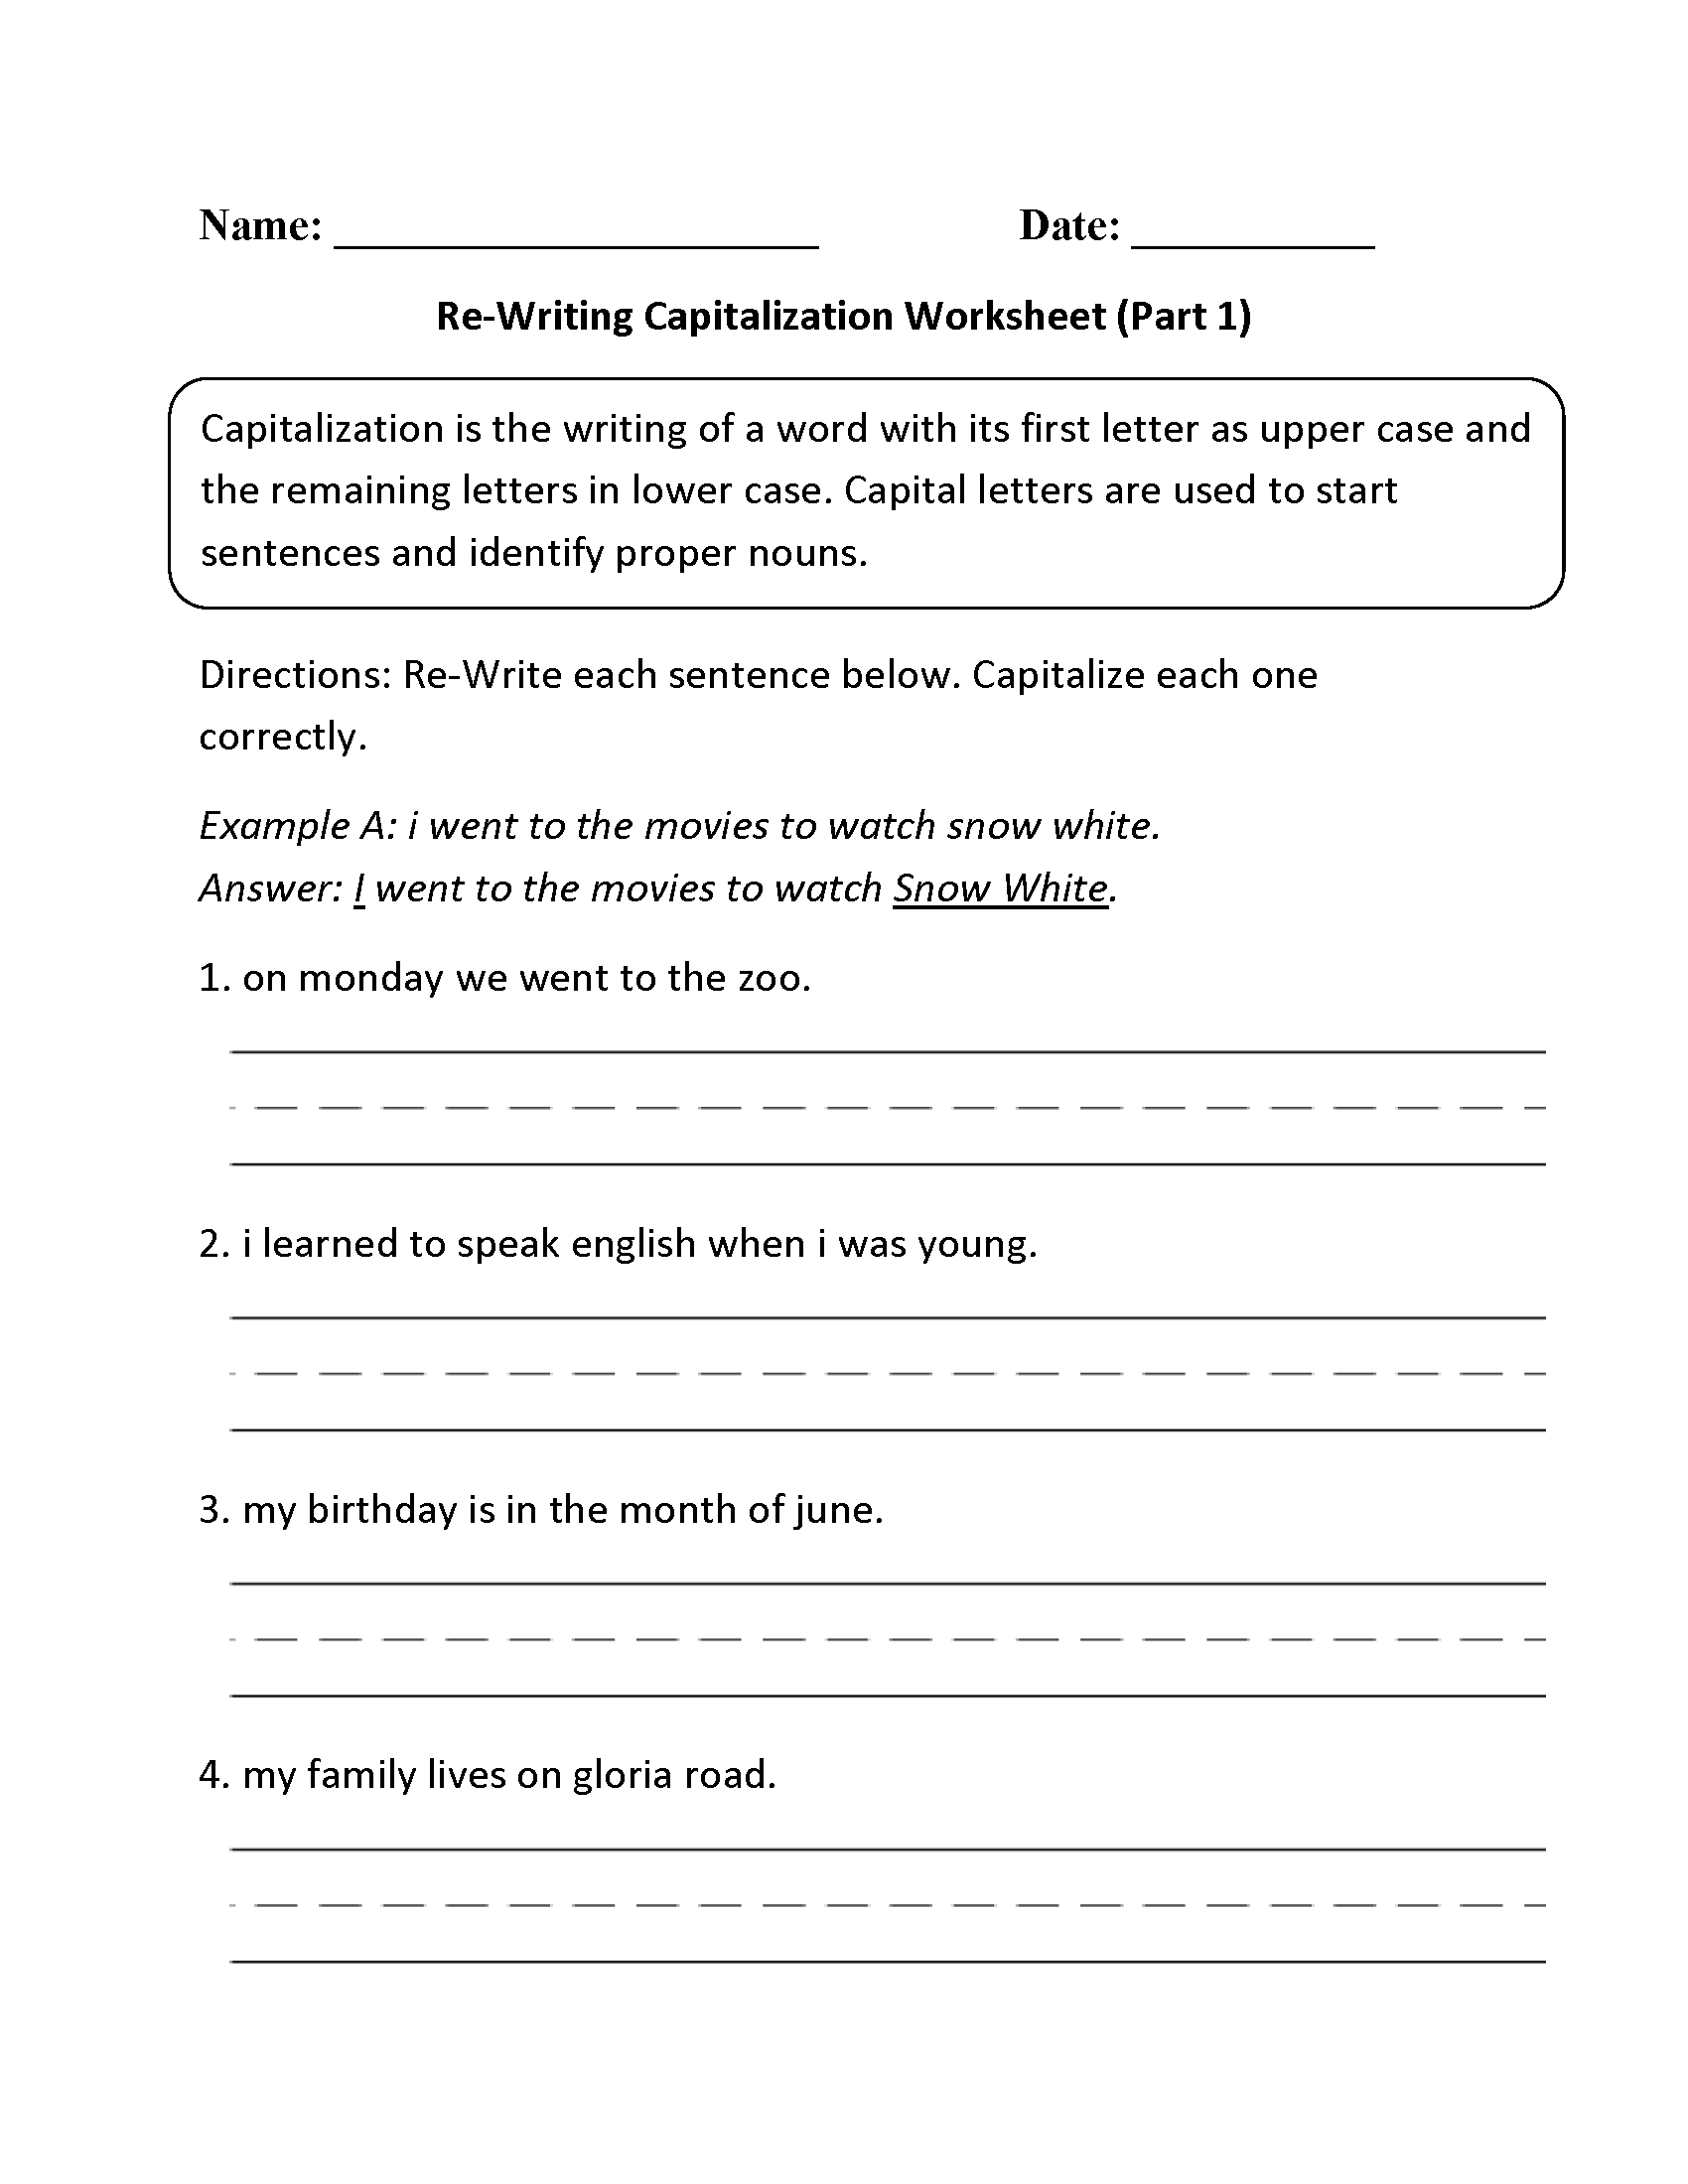 Re Writing Capitalization Worksheet Part 1